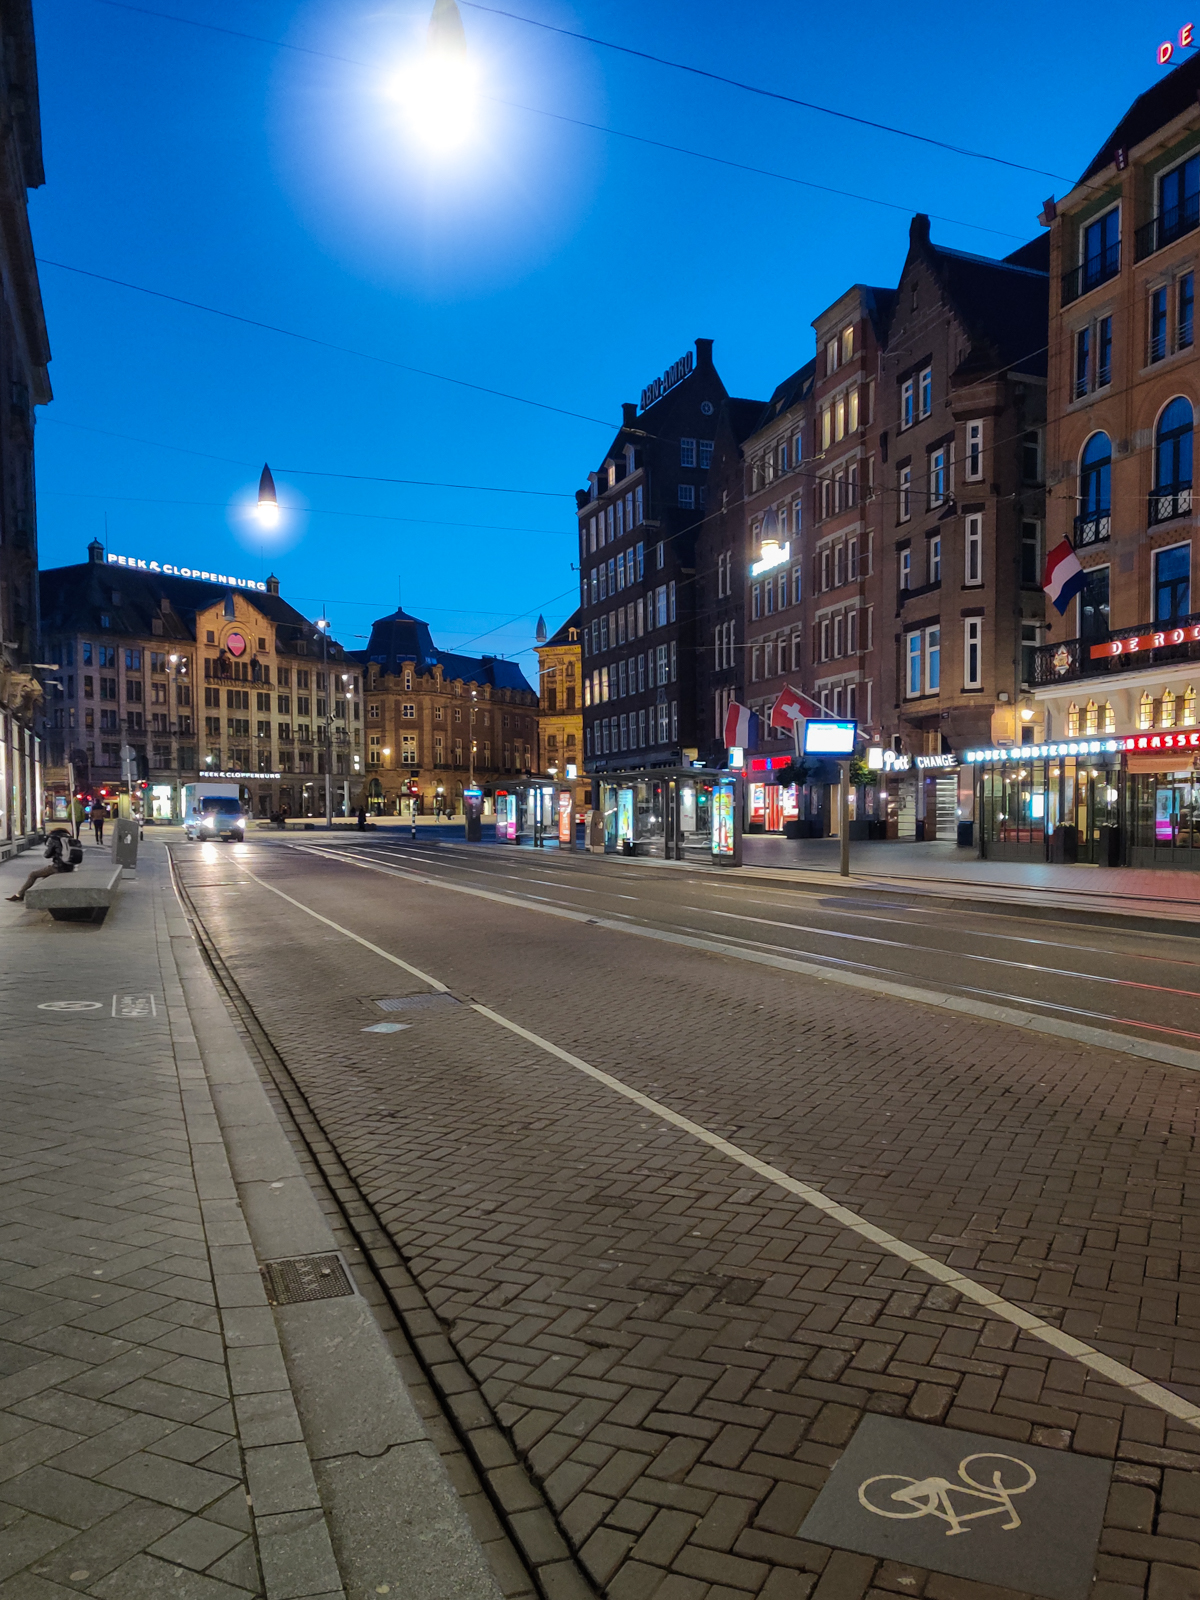 Empty streets and bicycle lanes in Amsterdam, Netherlands during the COVID pandemic